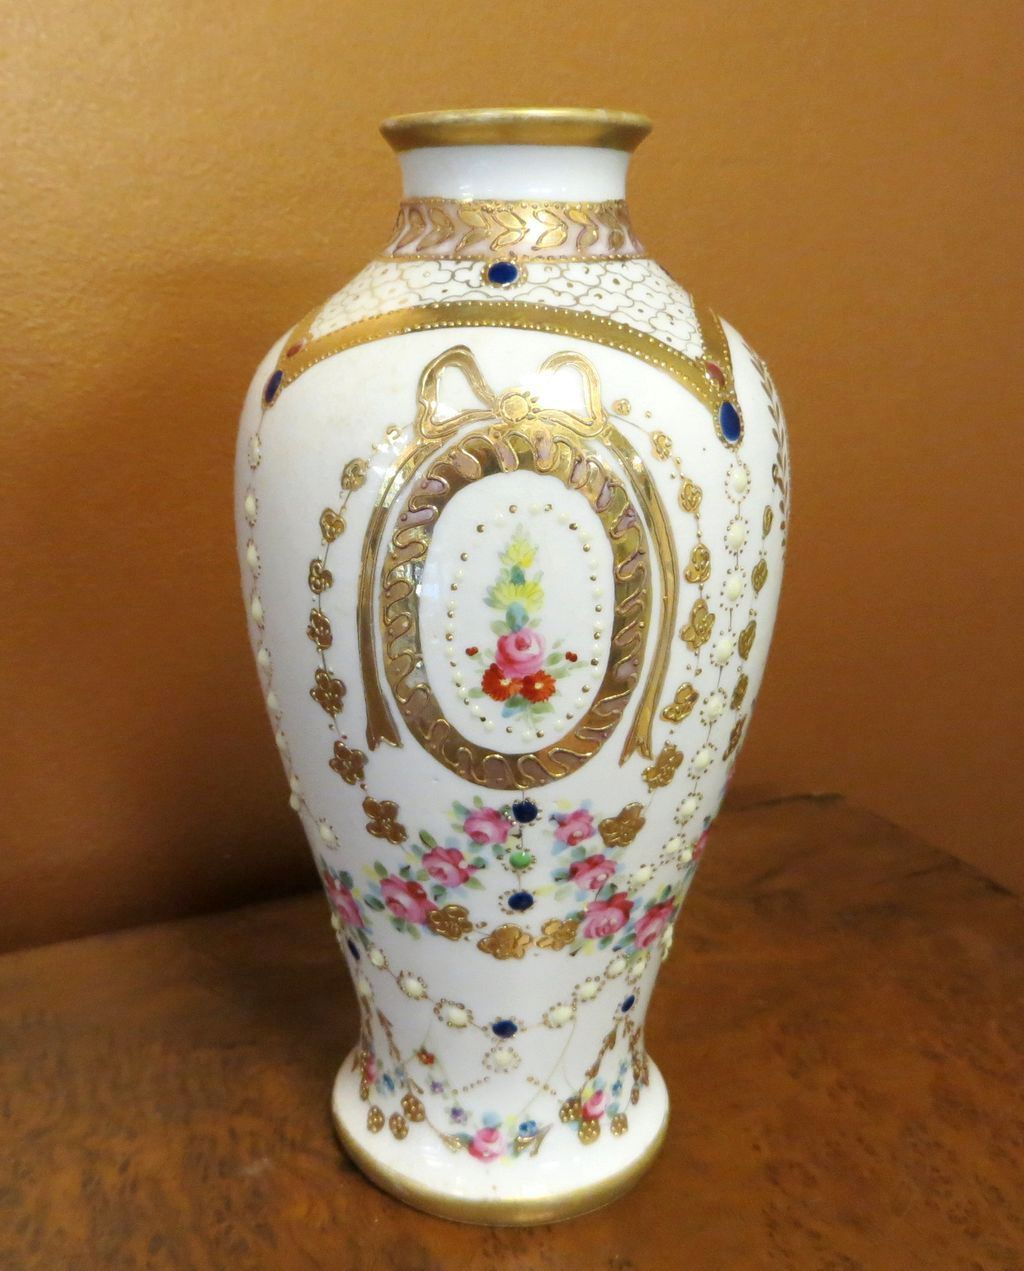 Ornate Circa 1920 S Jeweled Amp Floral Enameled Nippon Vase